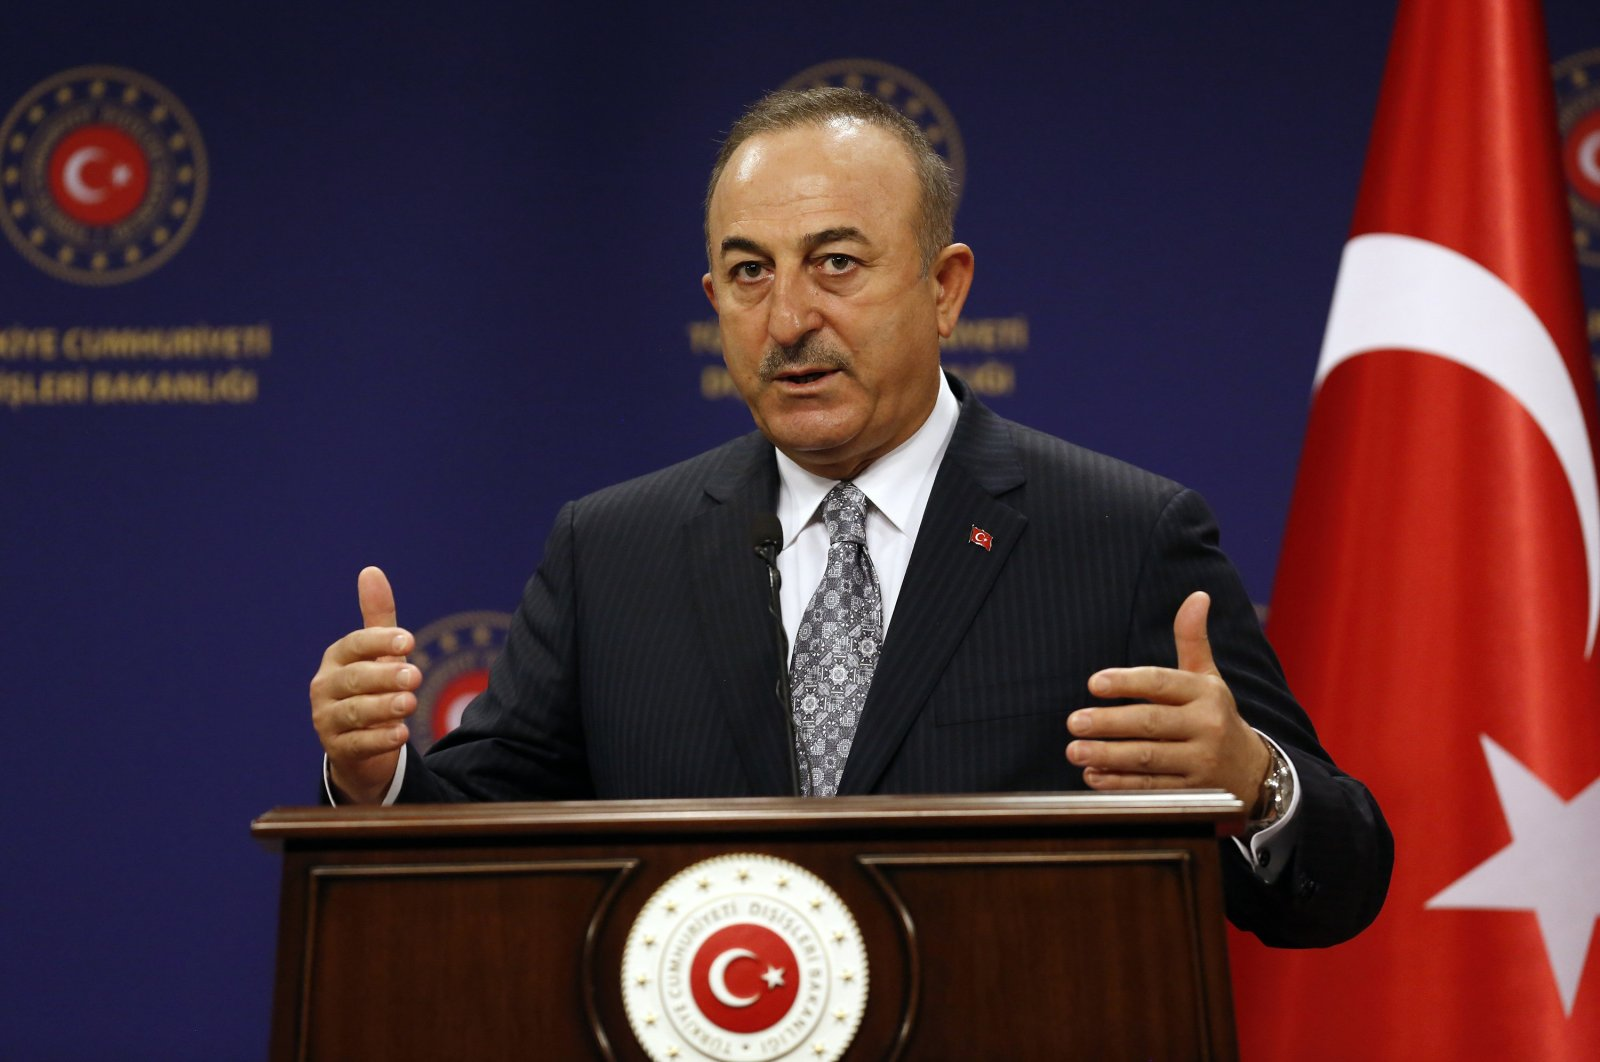 FM Çavuşoğlu speaks at a news conference with Iraqi counterpart in Ankara, Dec. 21, 2021. (AA File Photo)